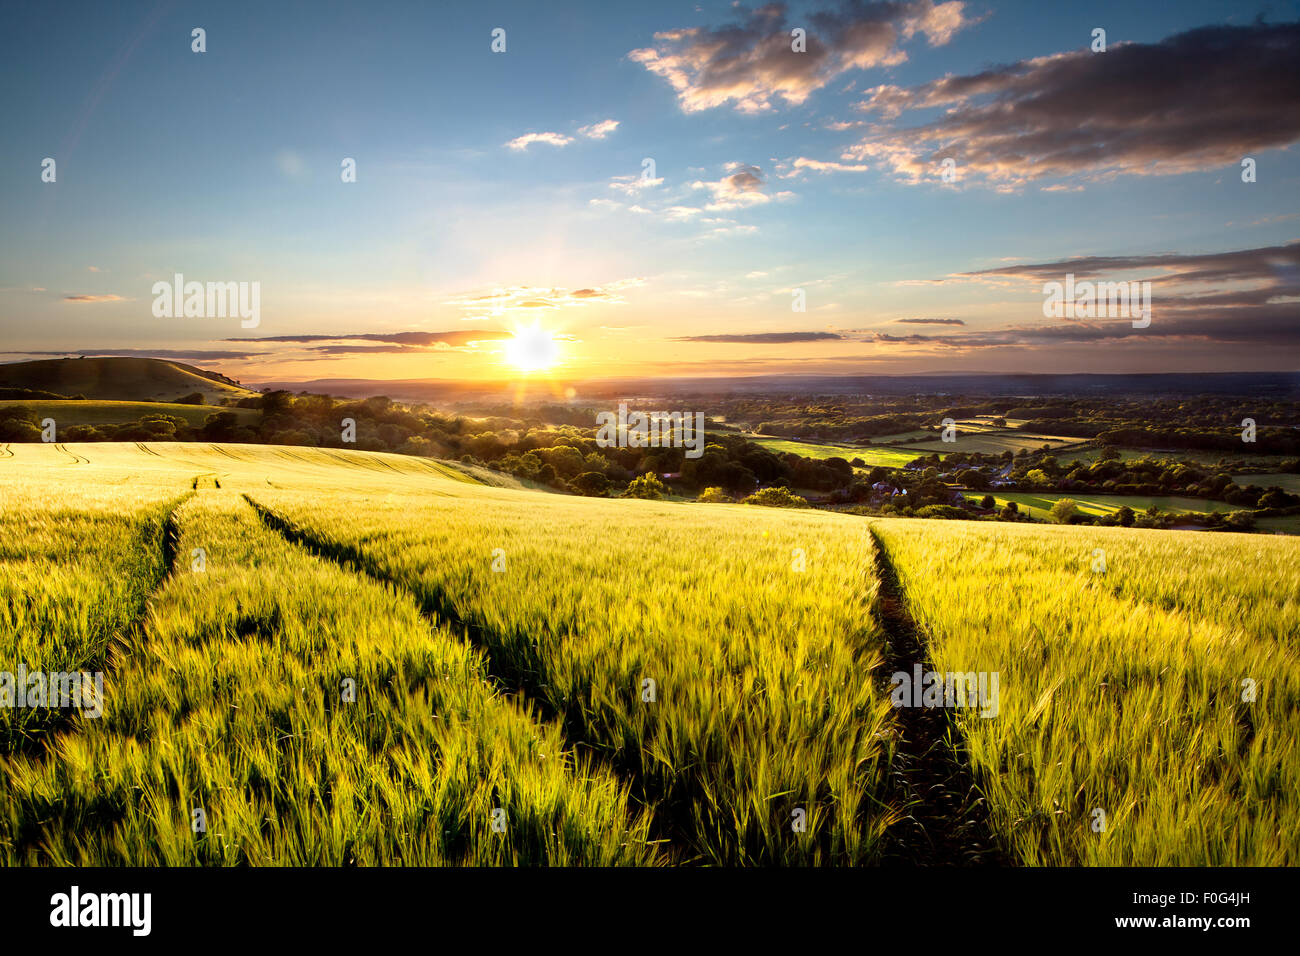 The South Downs Clayton at sunset - Stock Image